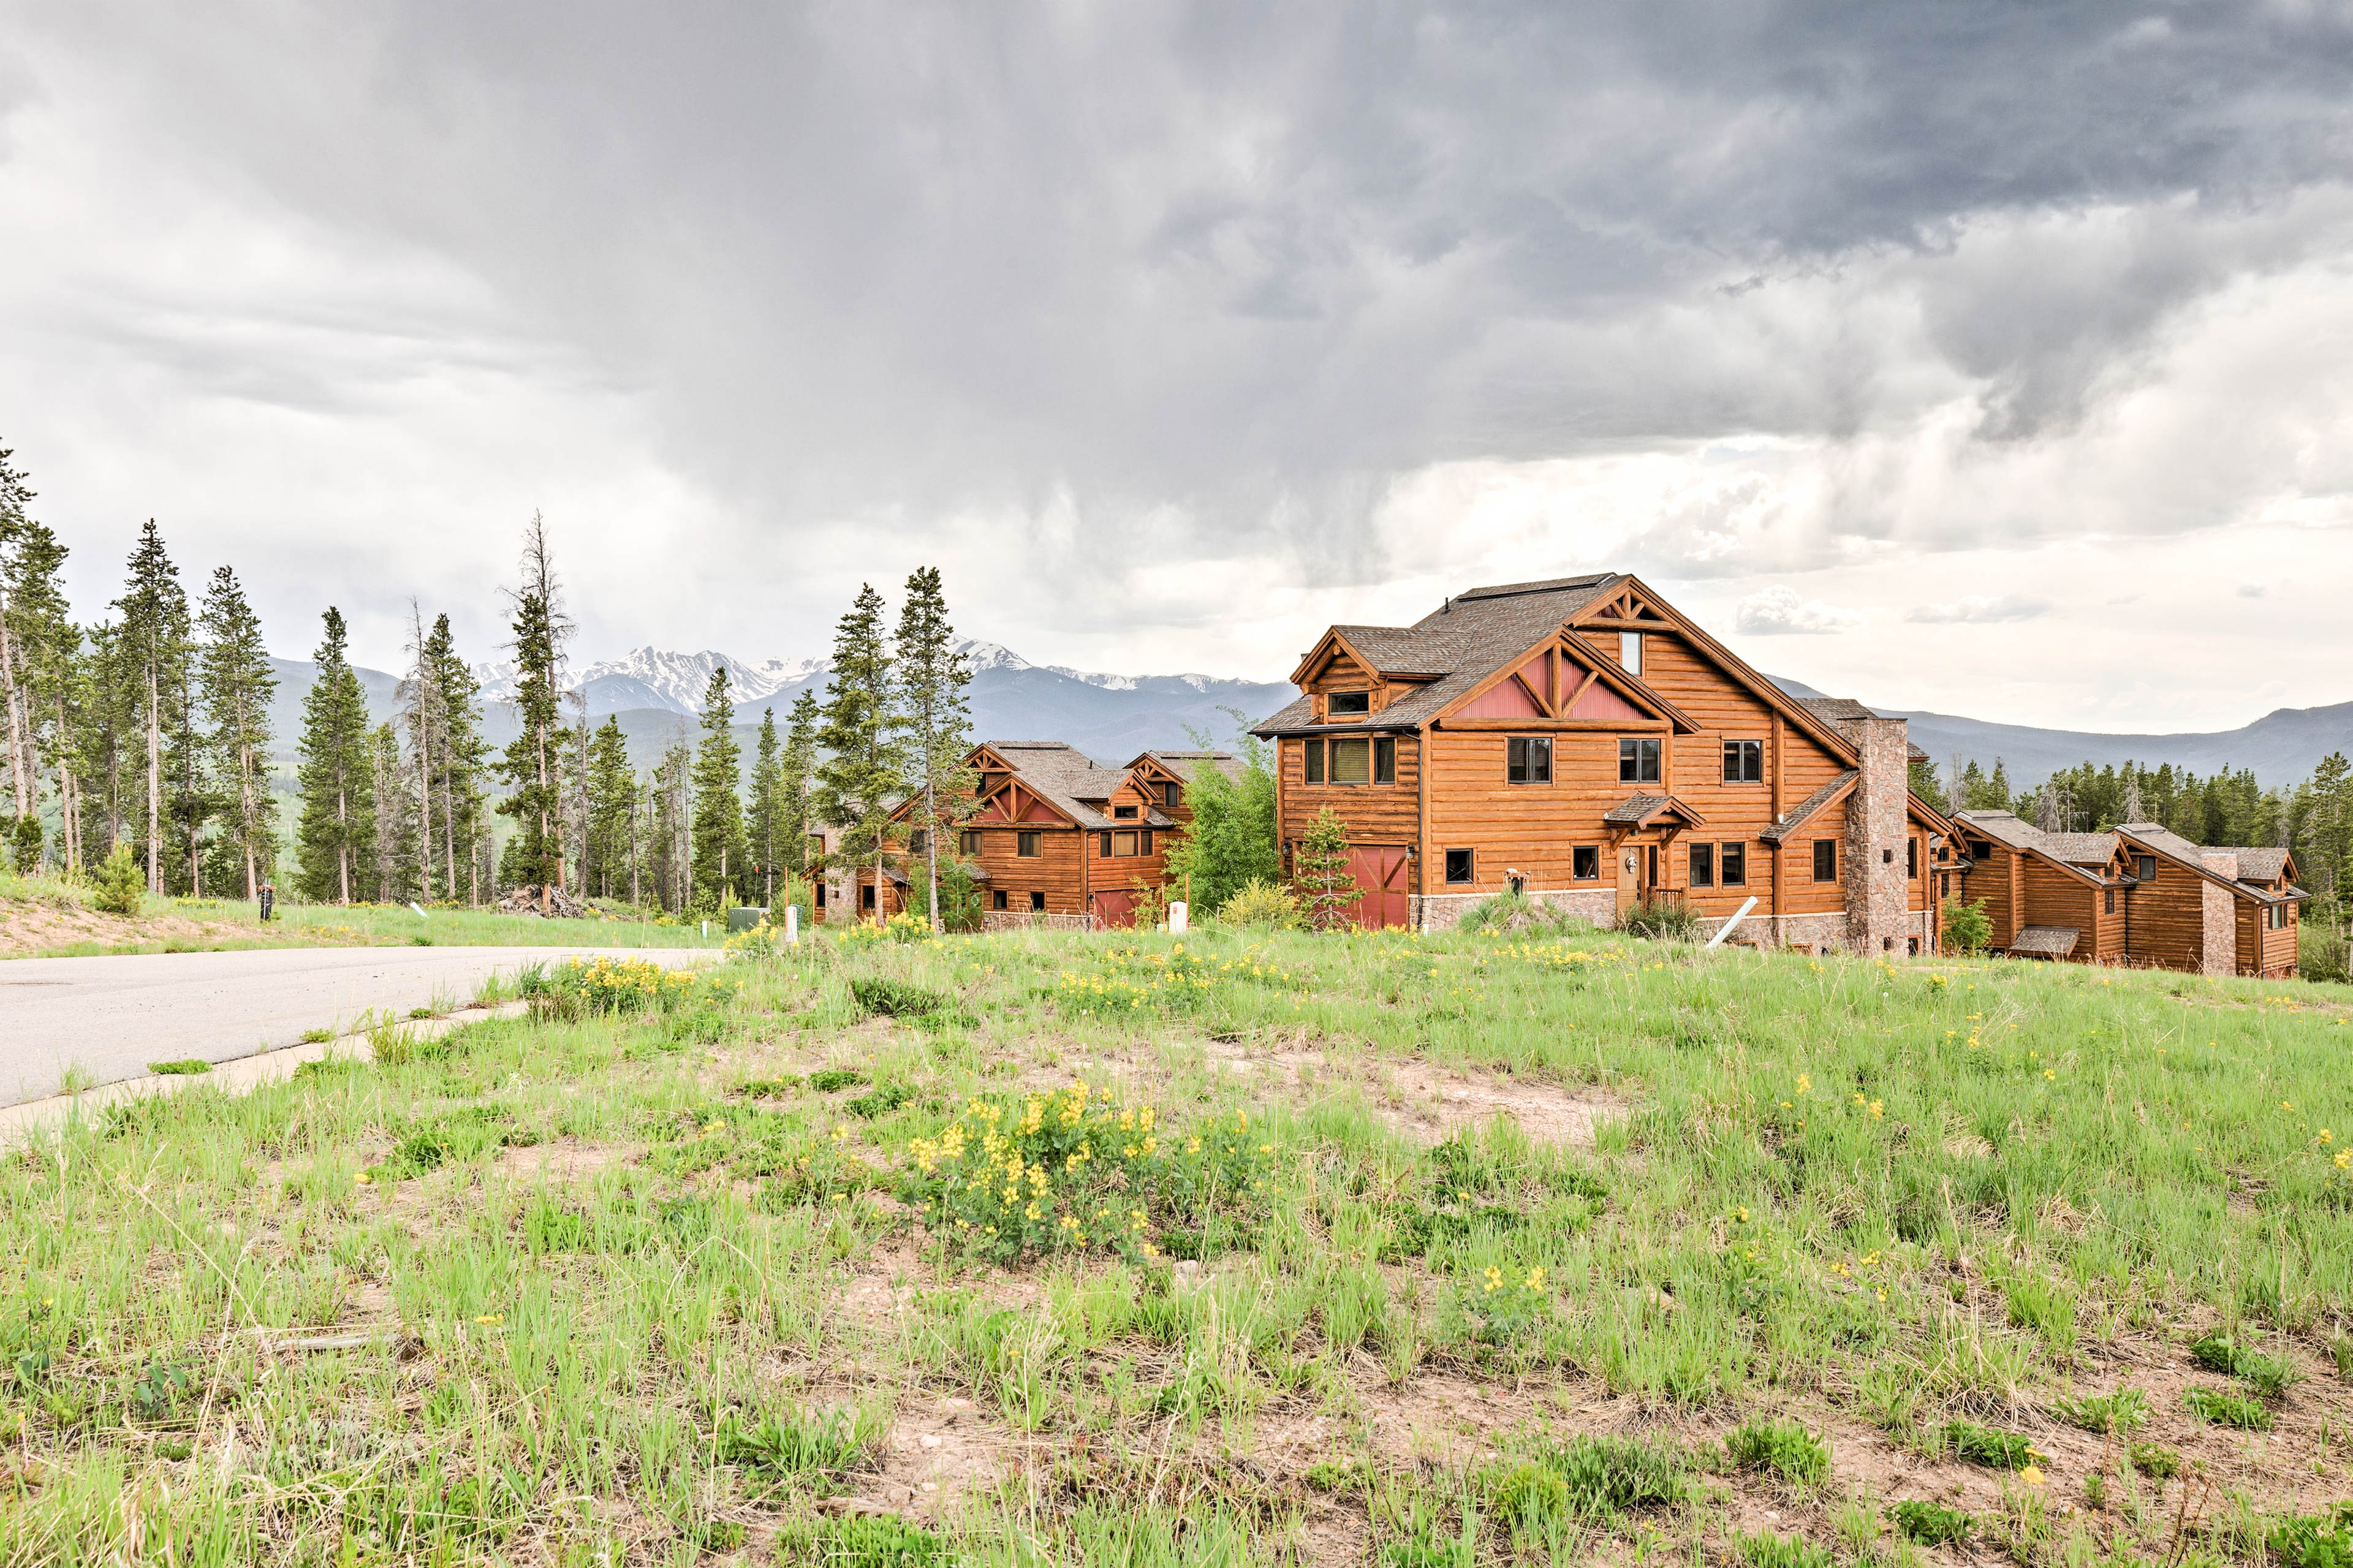 Embrace the relaxation that comes from staying at this secluded mountain home.